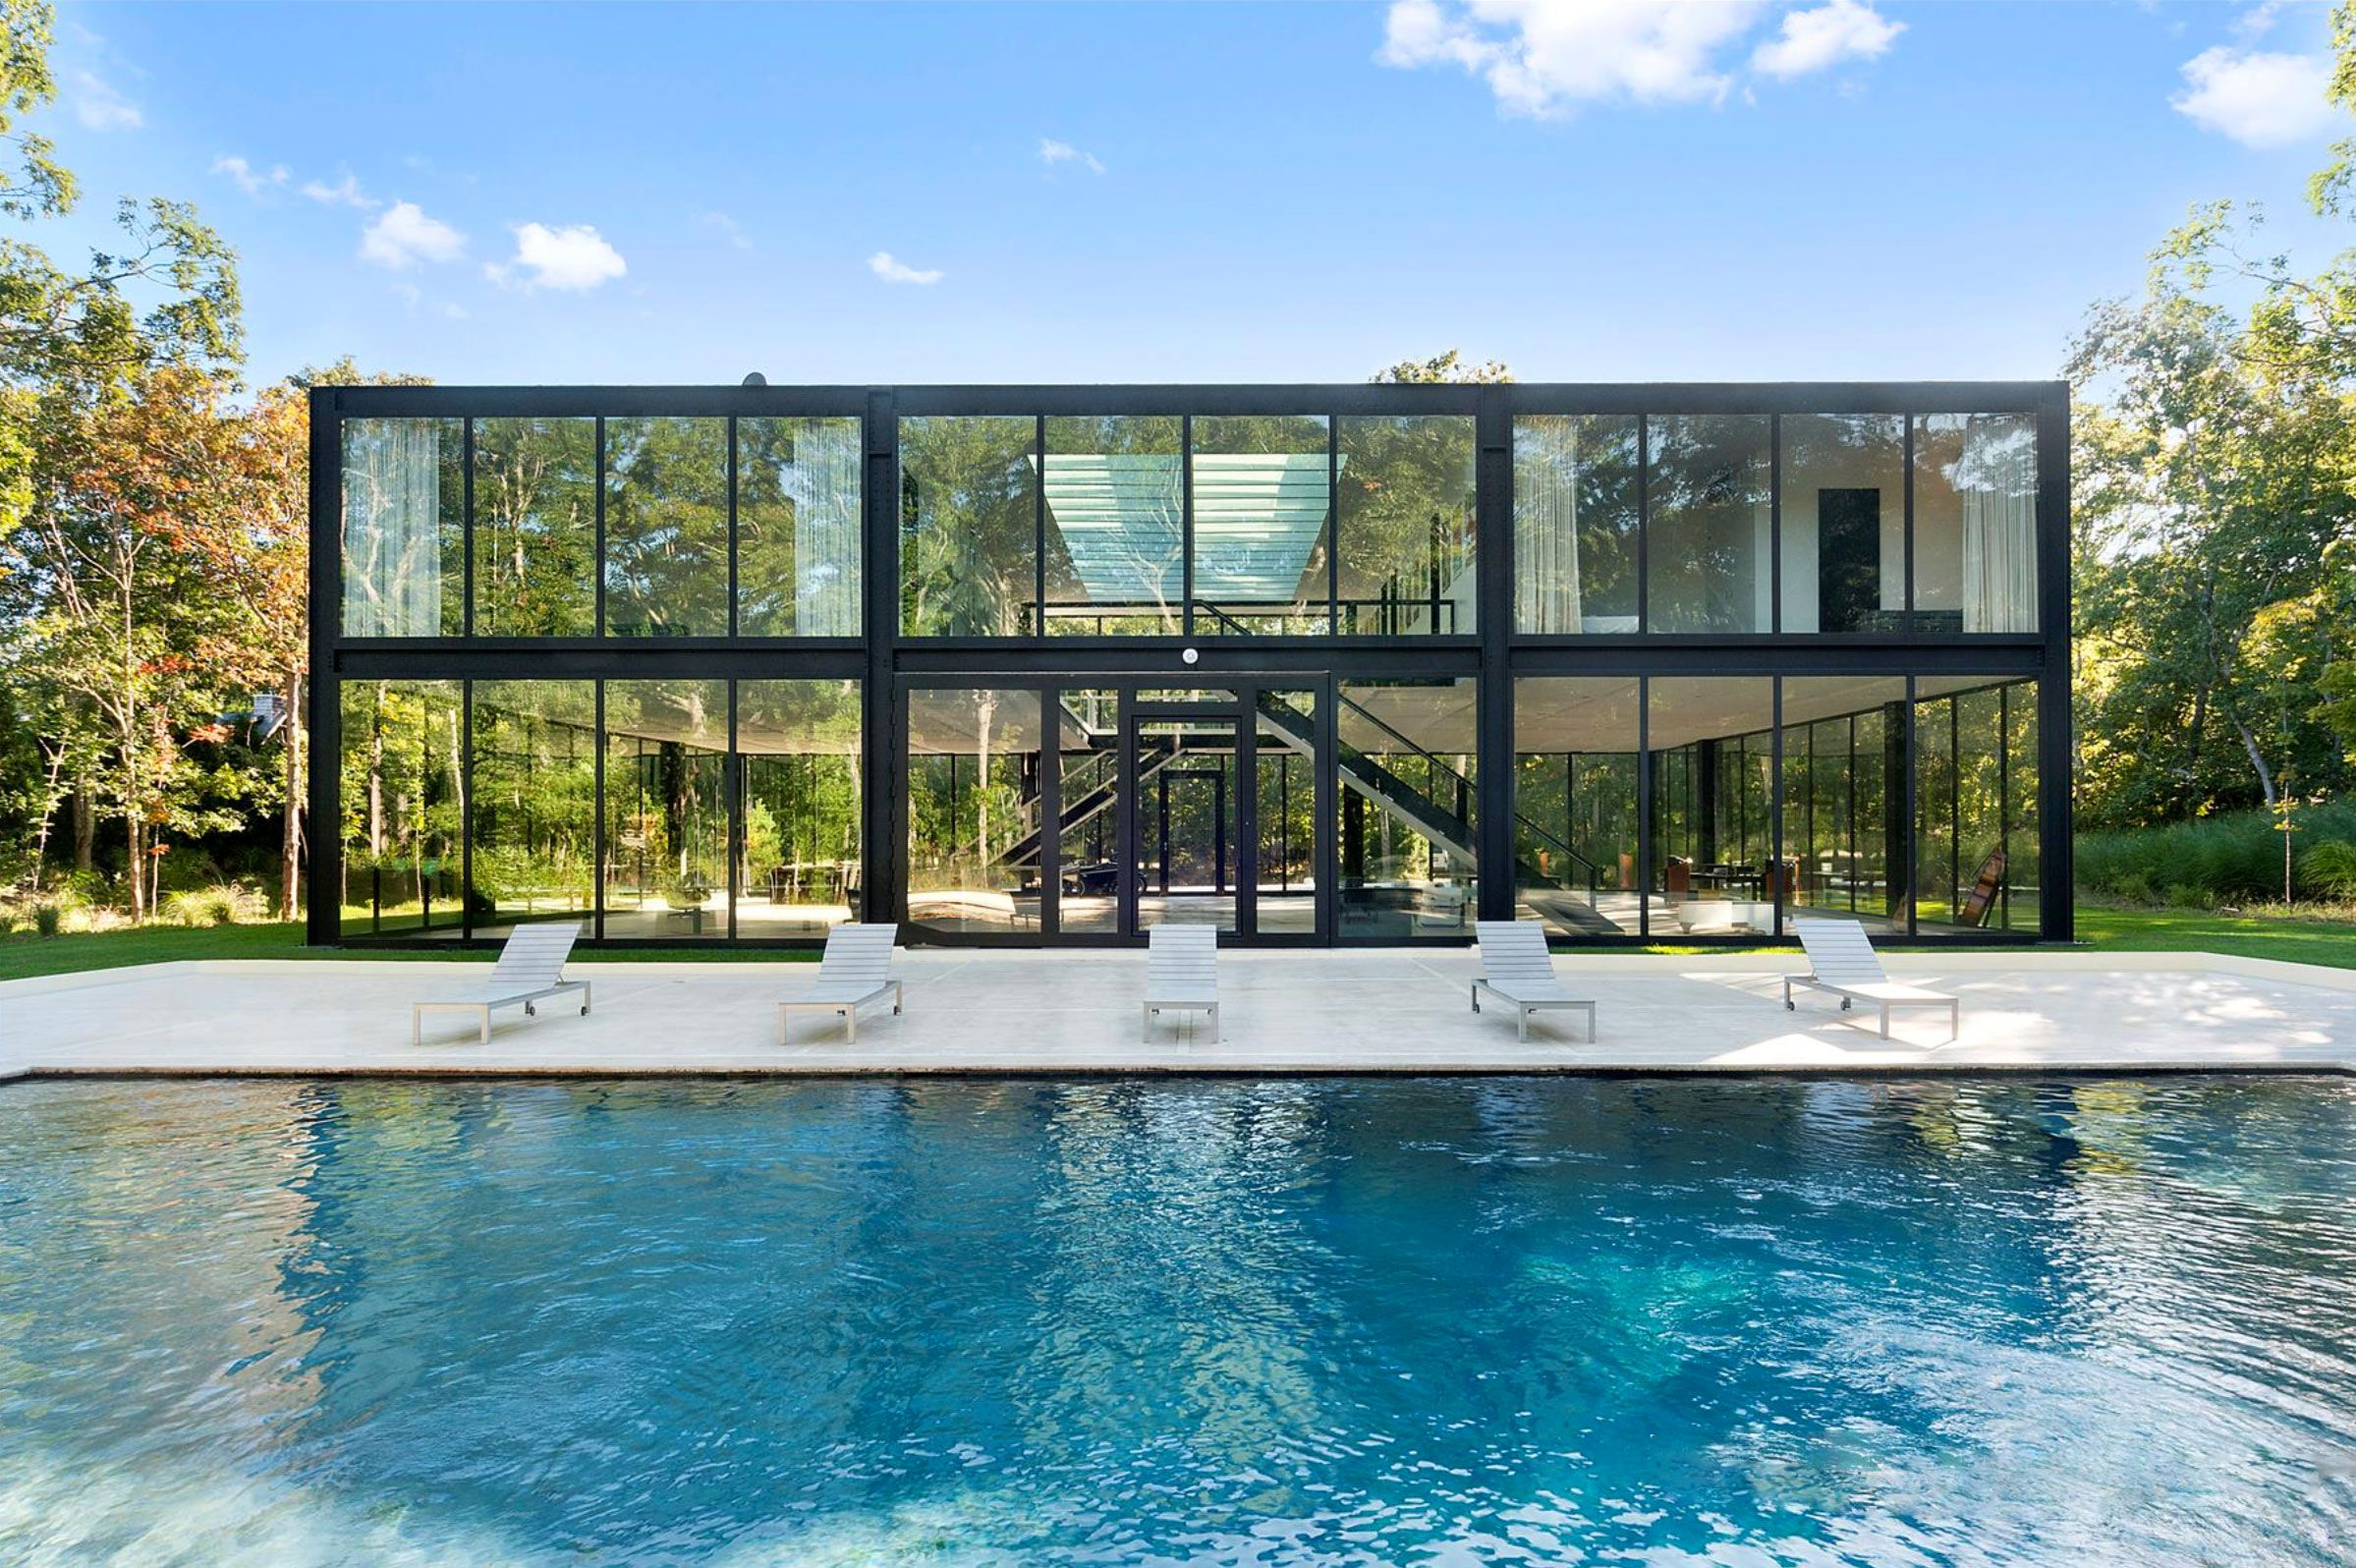 Design A Blueprint Own A Glass Box Hamptons Home Designed By One World Trade